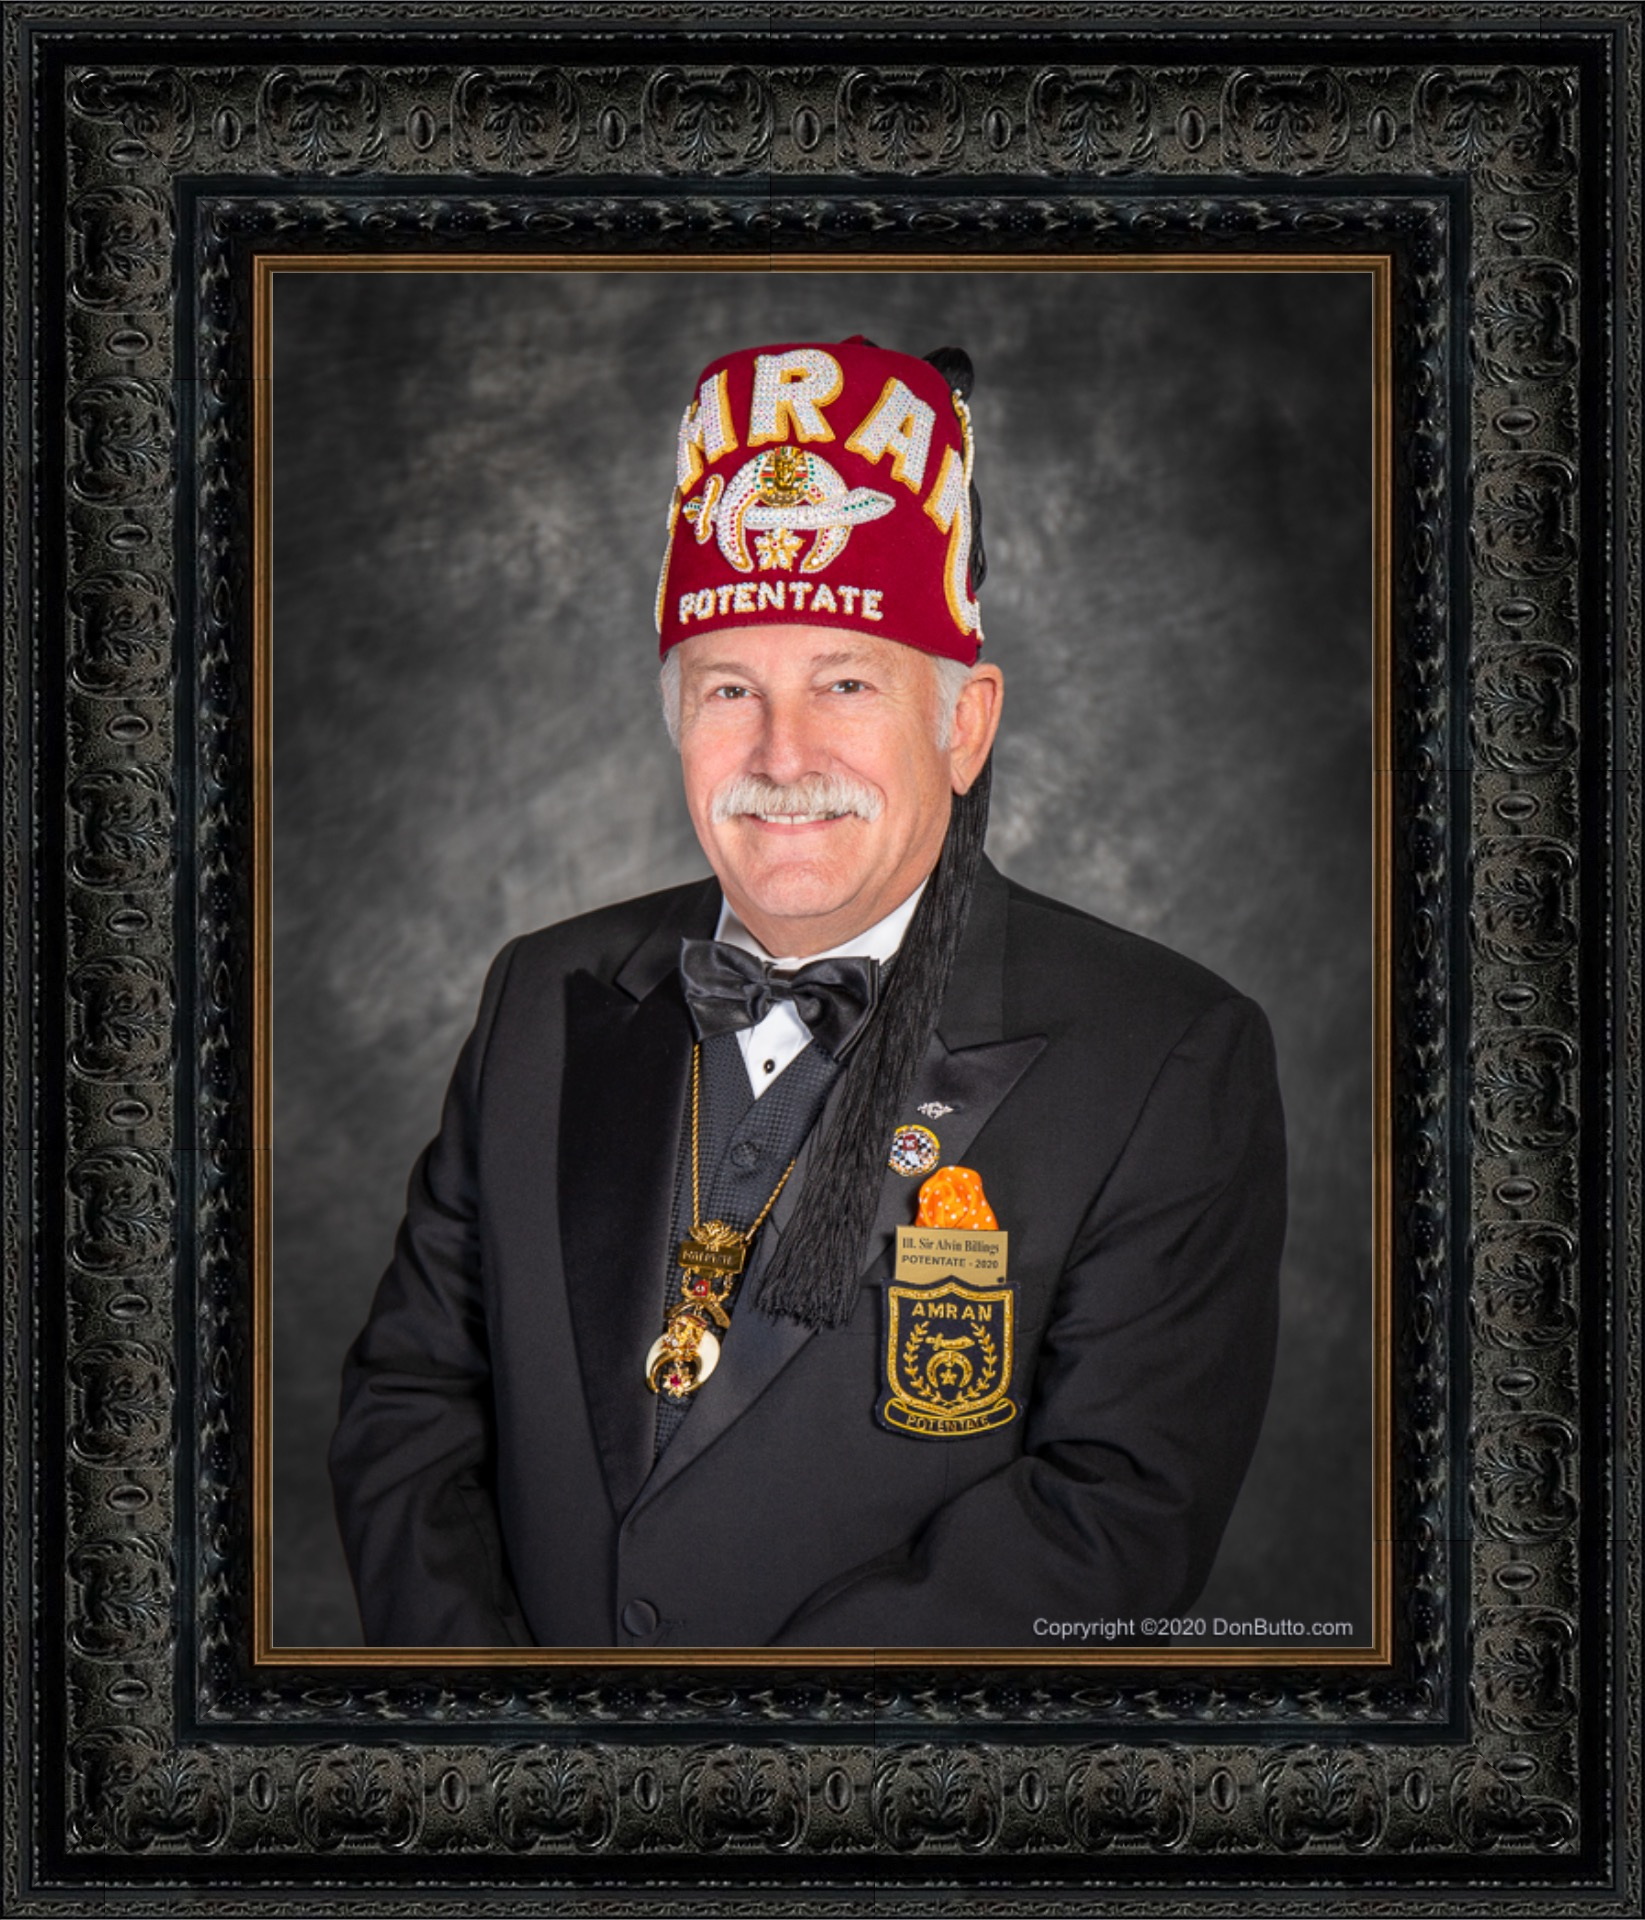 2020 Potentate - Amran Shriners